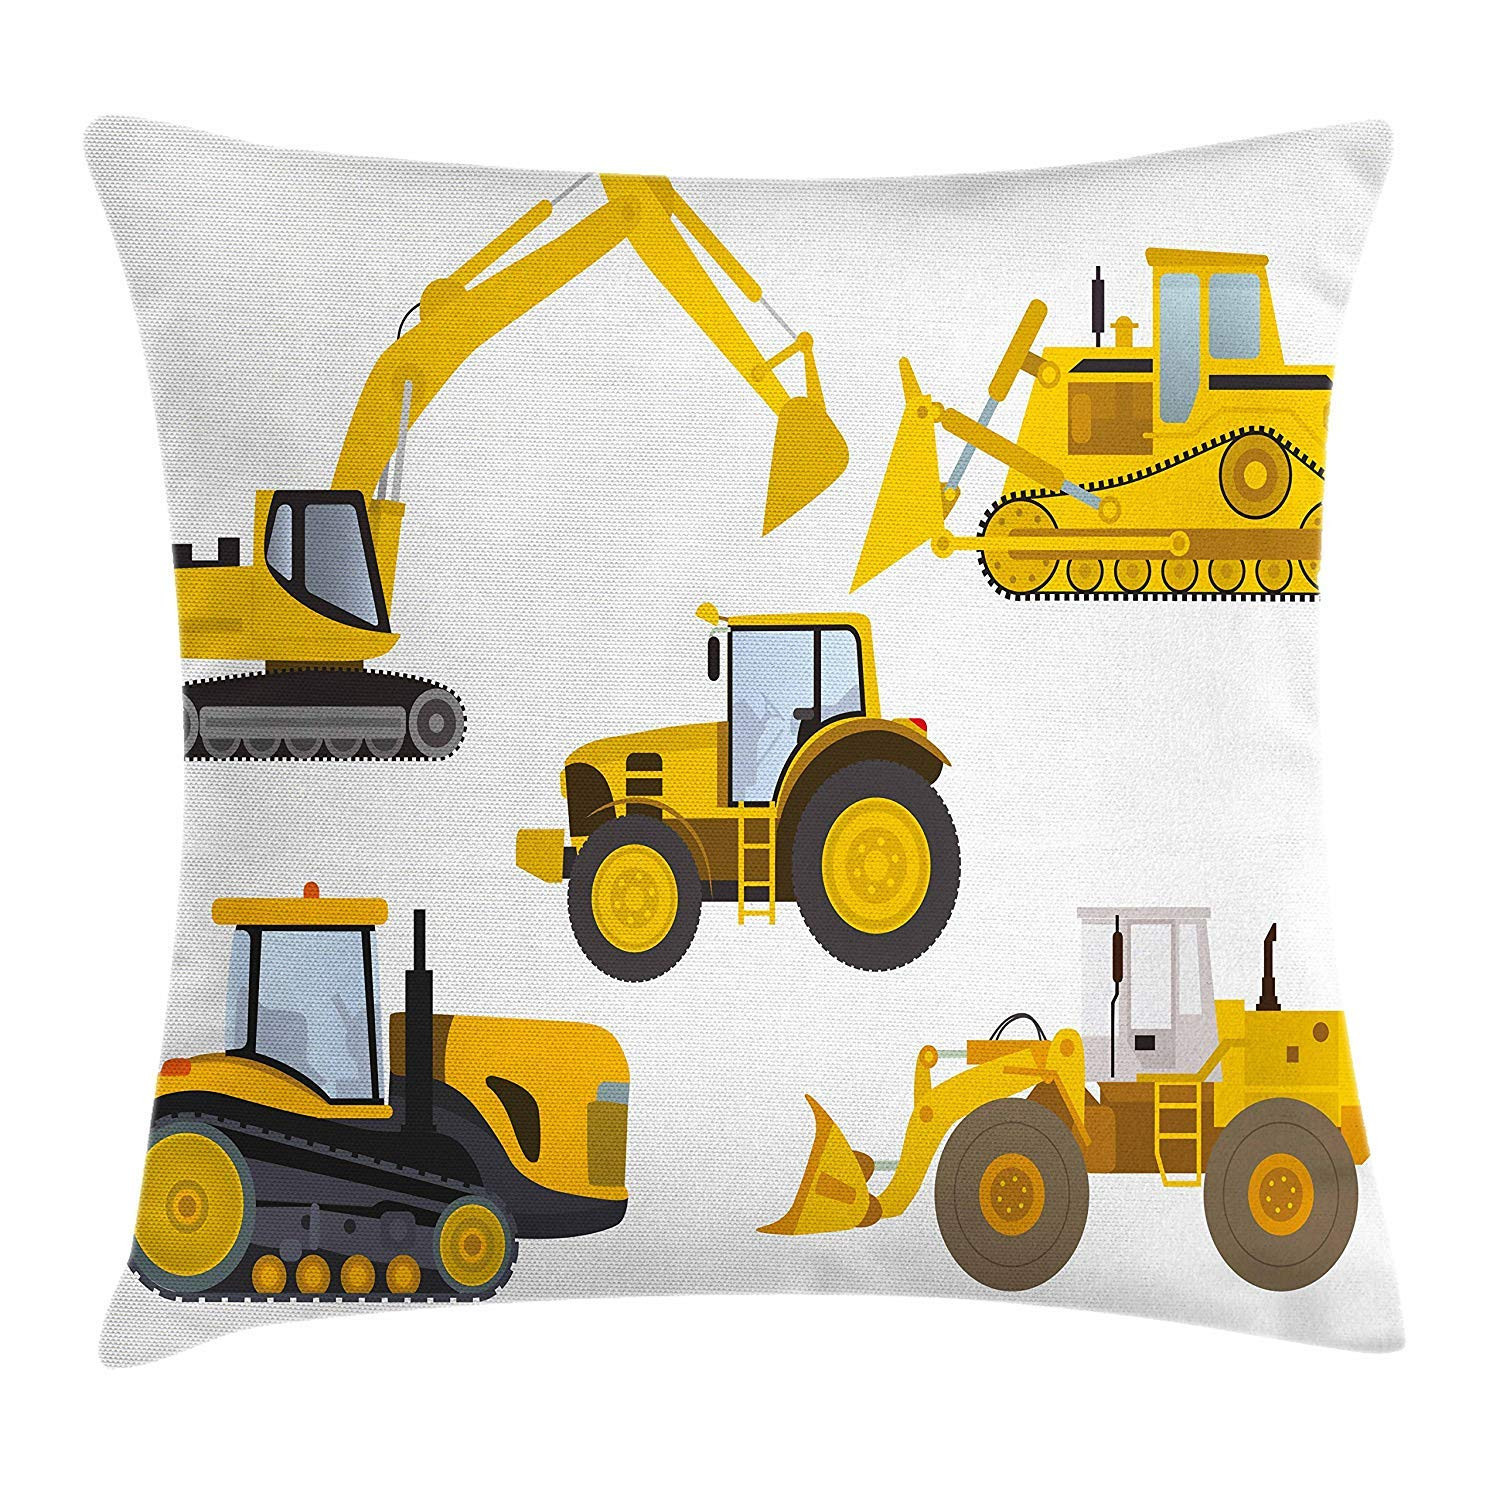 Funny bag Boy's Room Throw Pillow Cushion Cover Animation Inspired Heavy Machinery Drawing Construction Cartoon Bulldozer Print 18 X18 inches